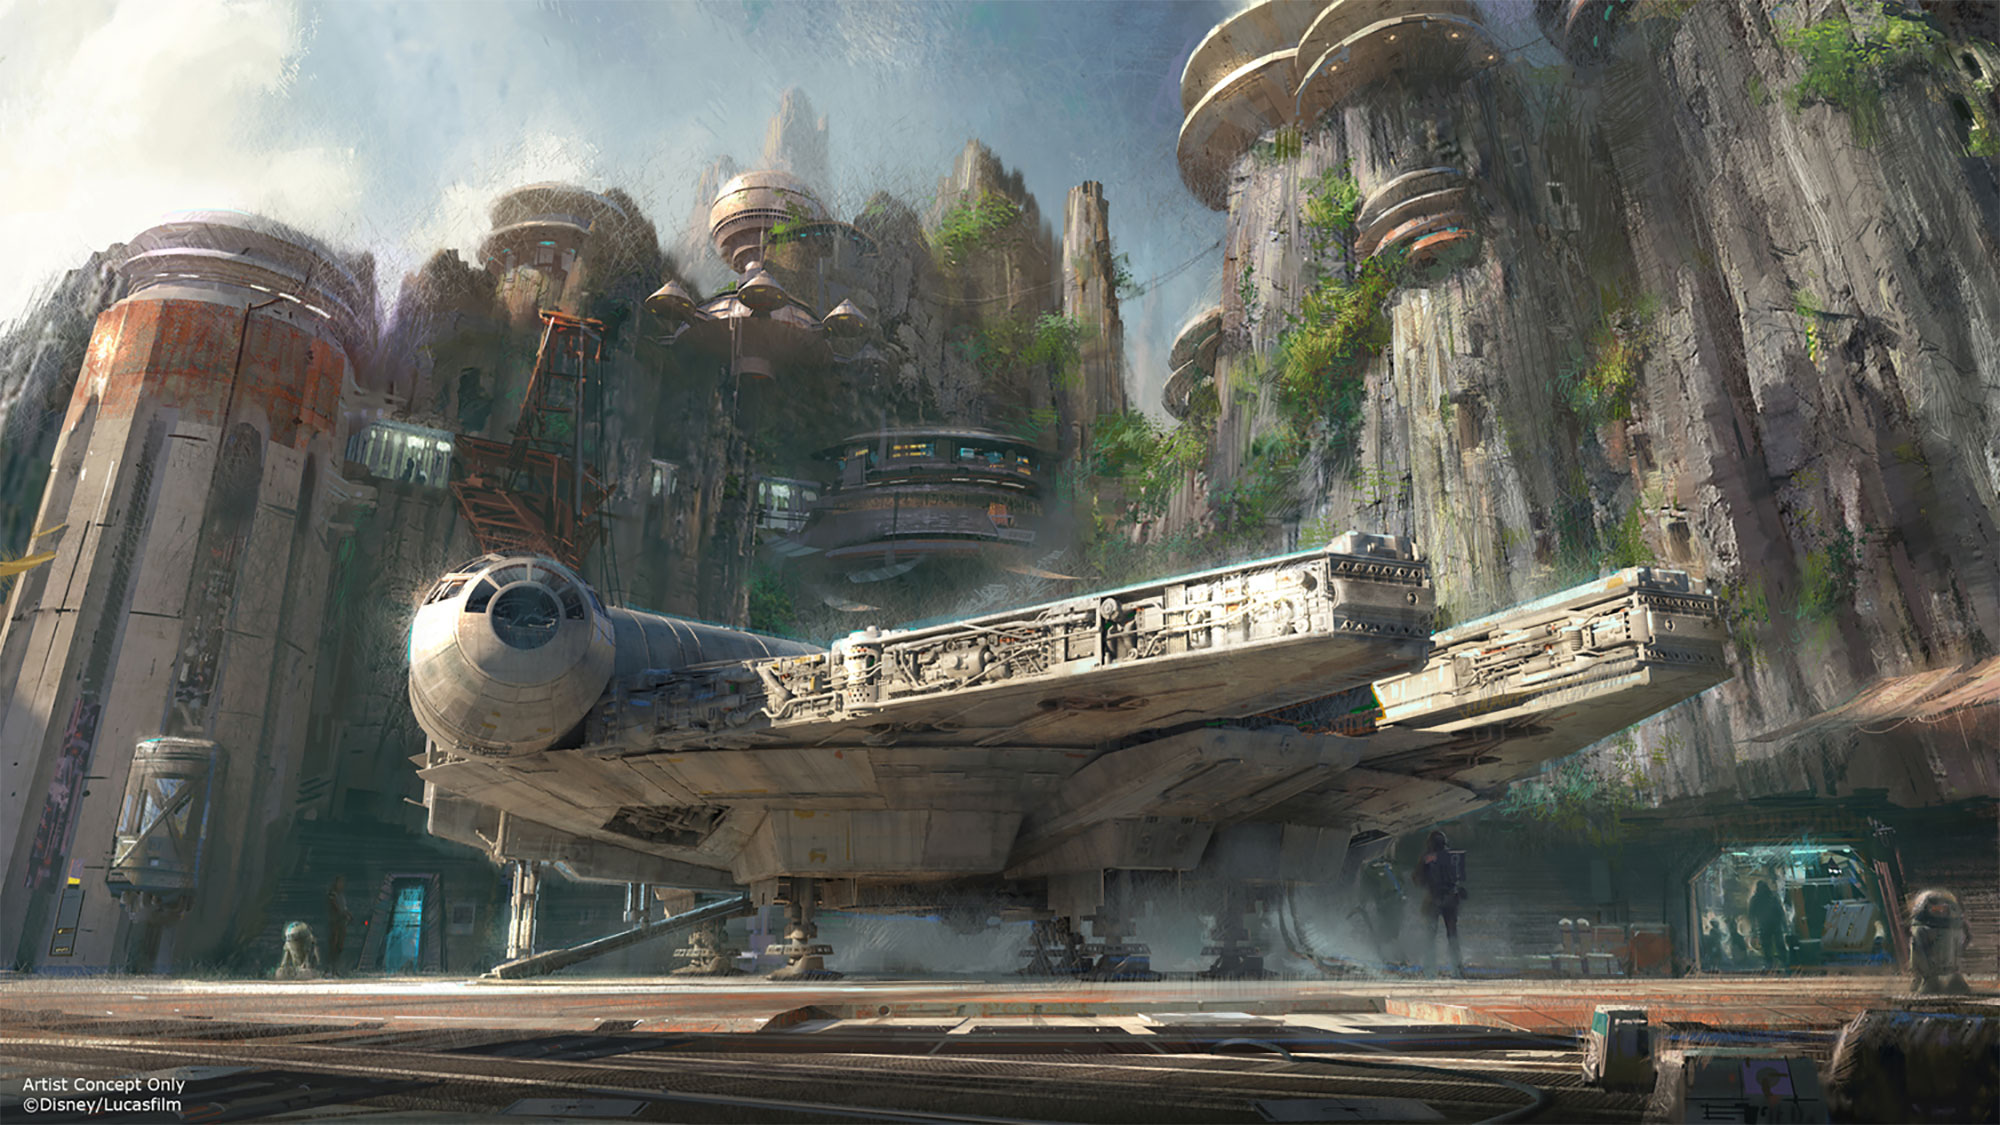 D23 Expo Artist Renderings photo